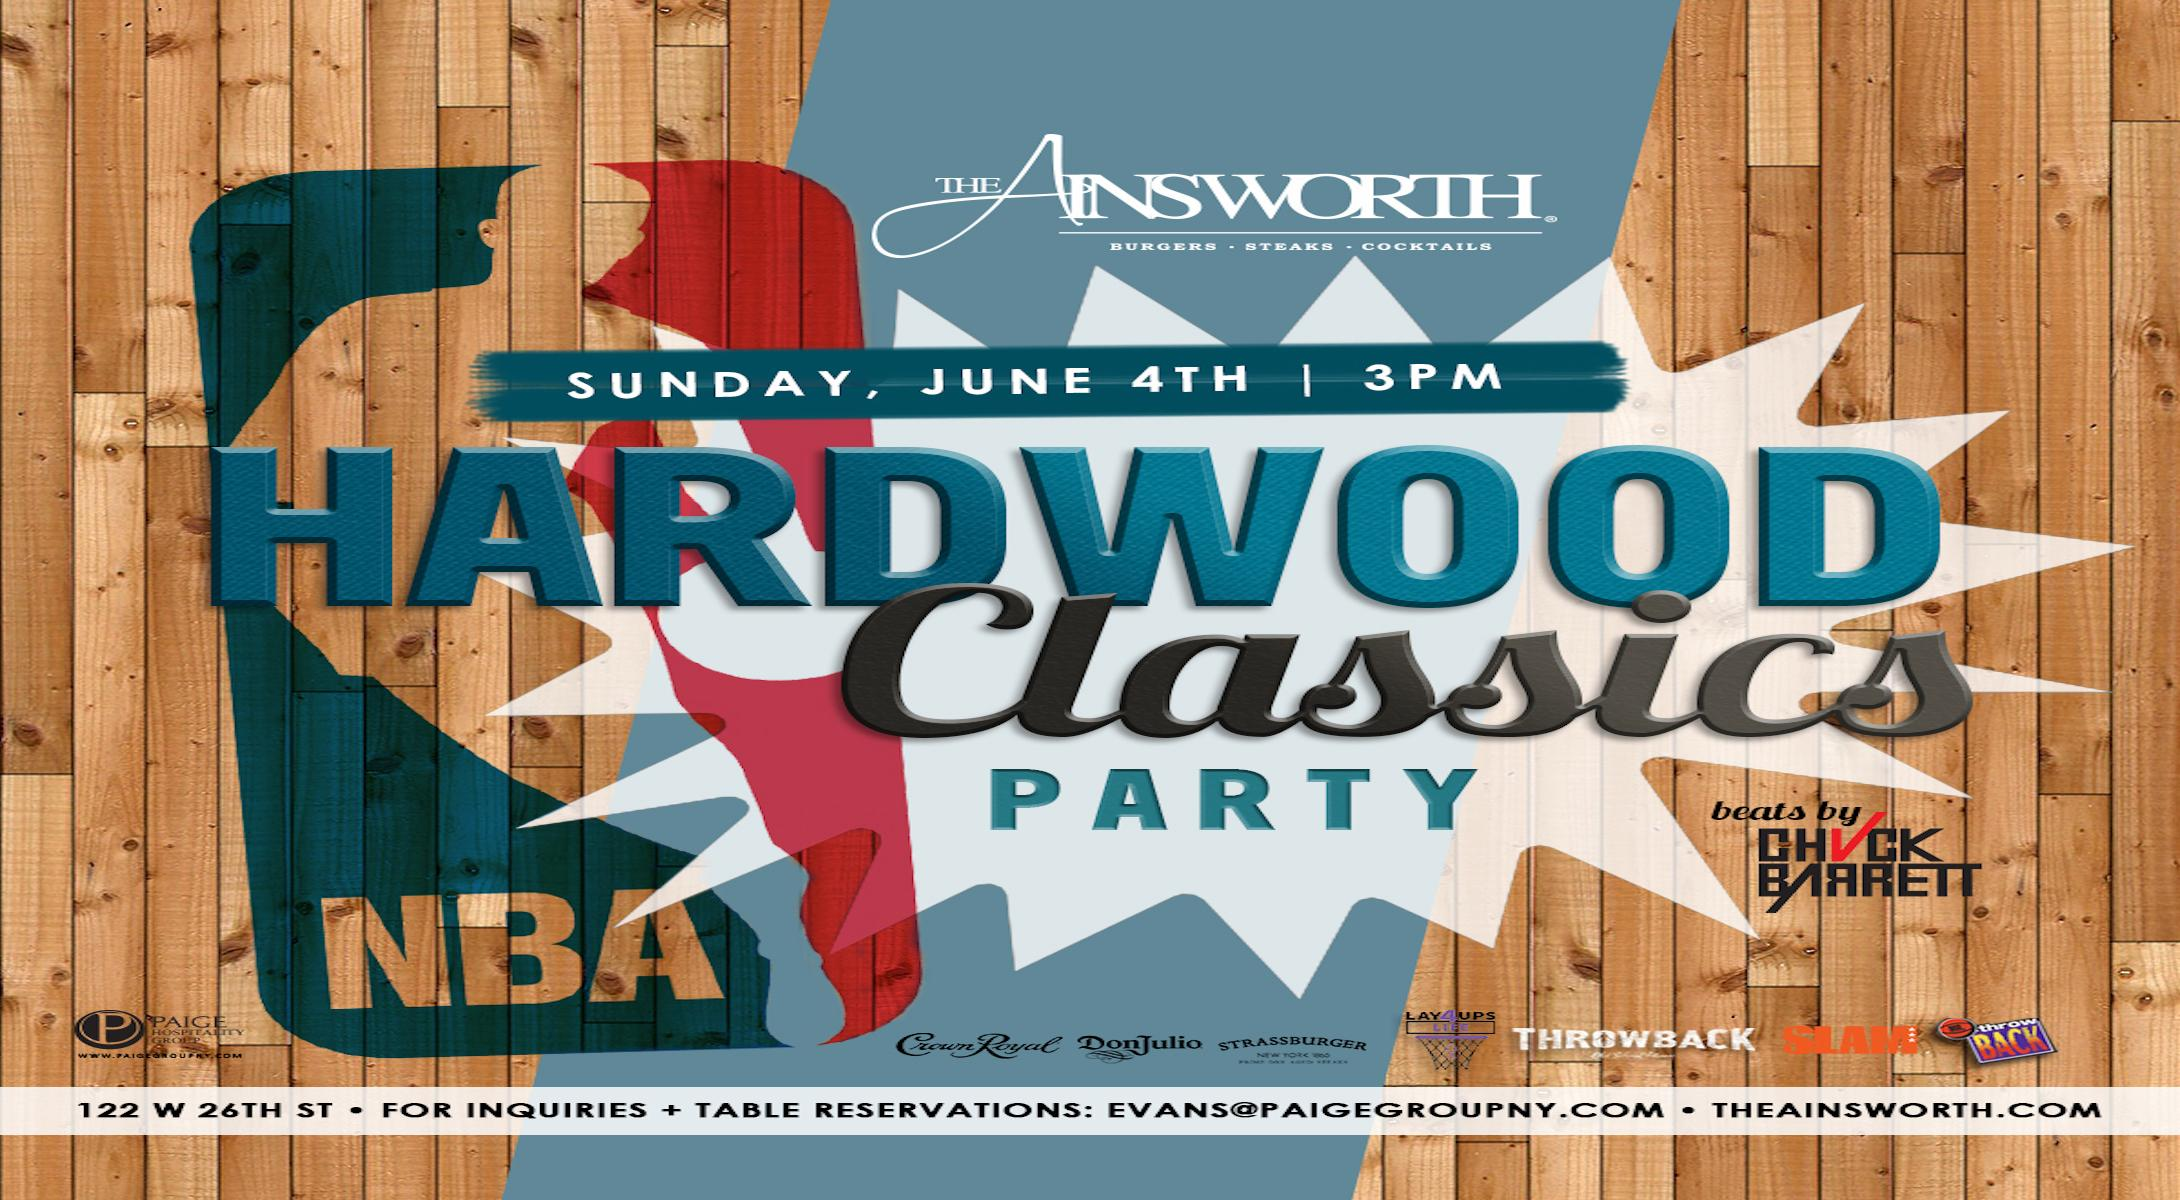 The Ainsworth NBA Finals Hardwood Classics Pa